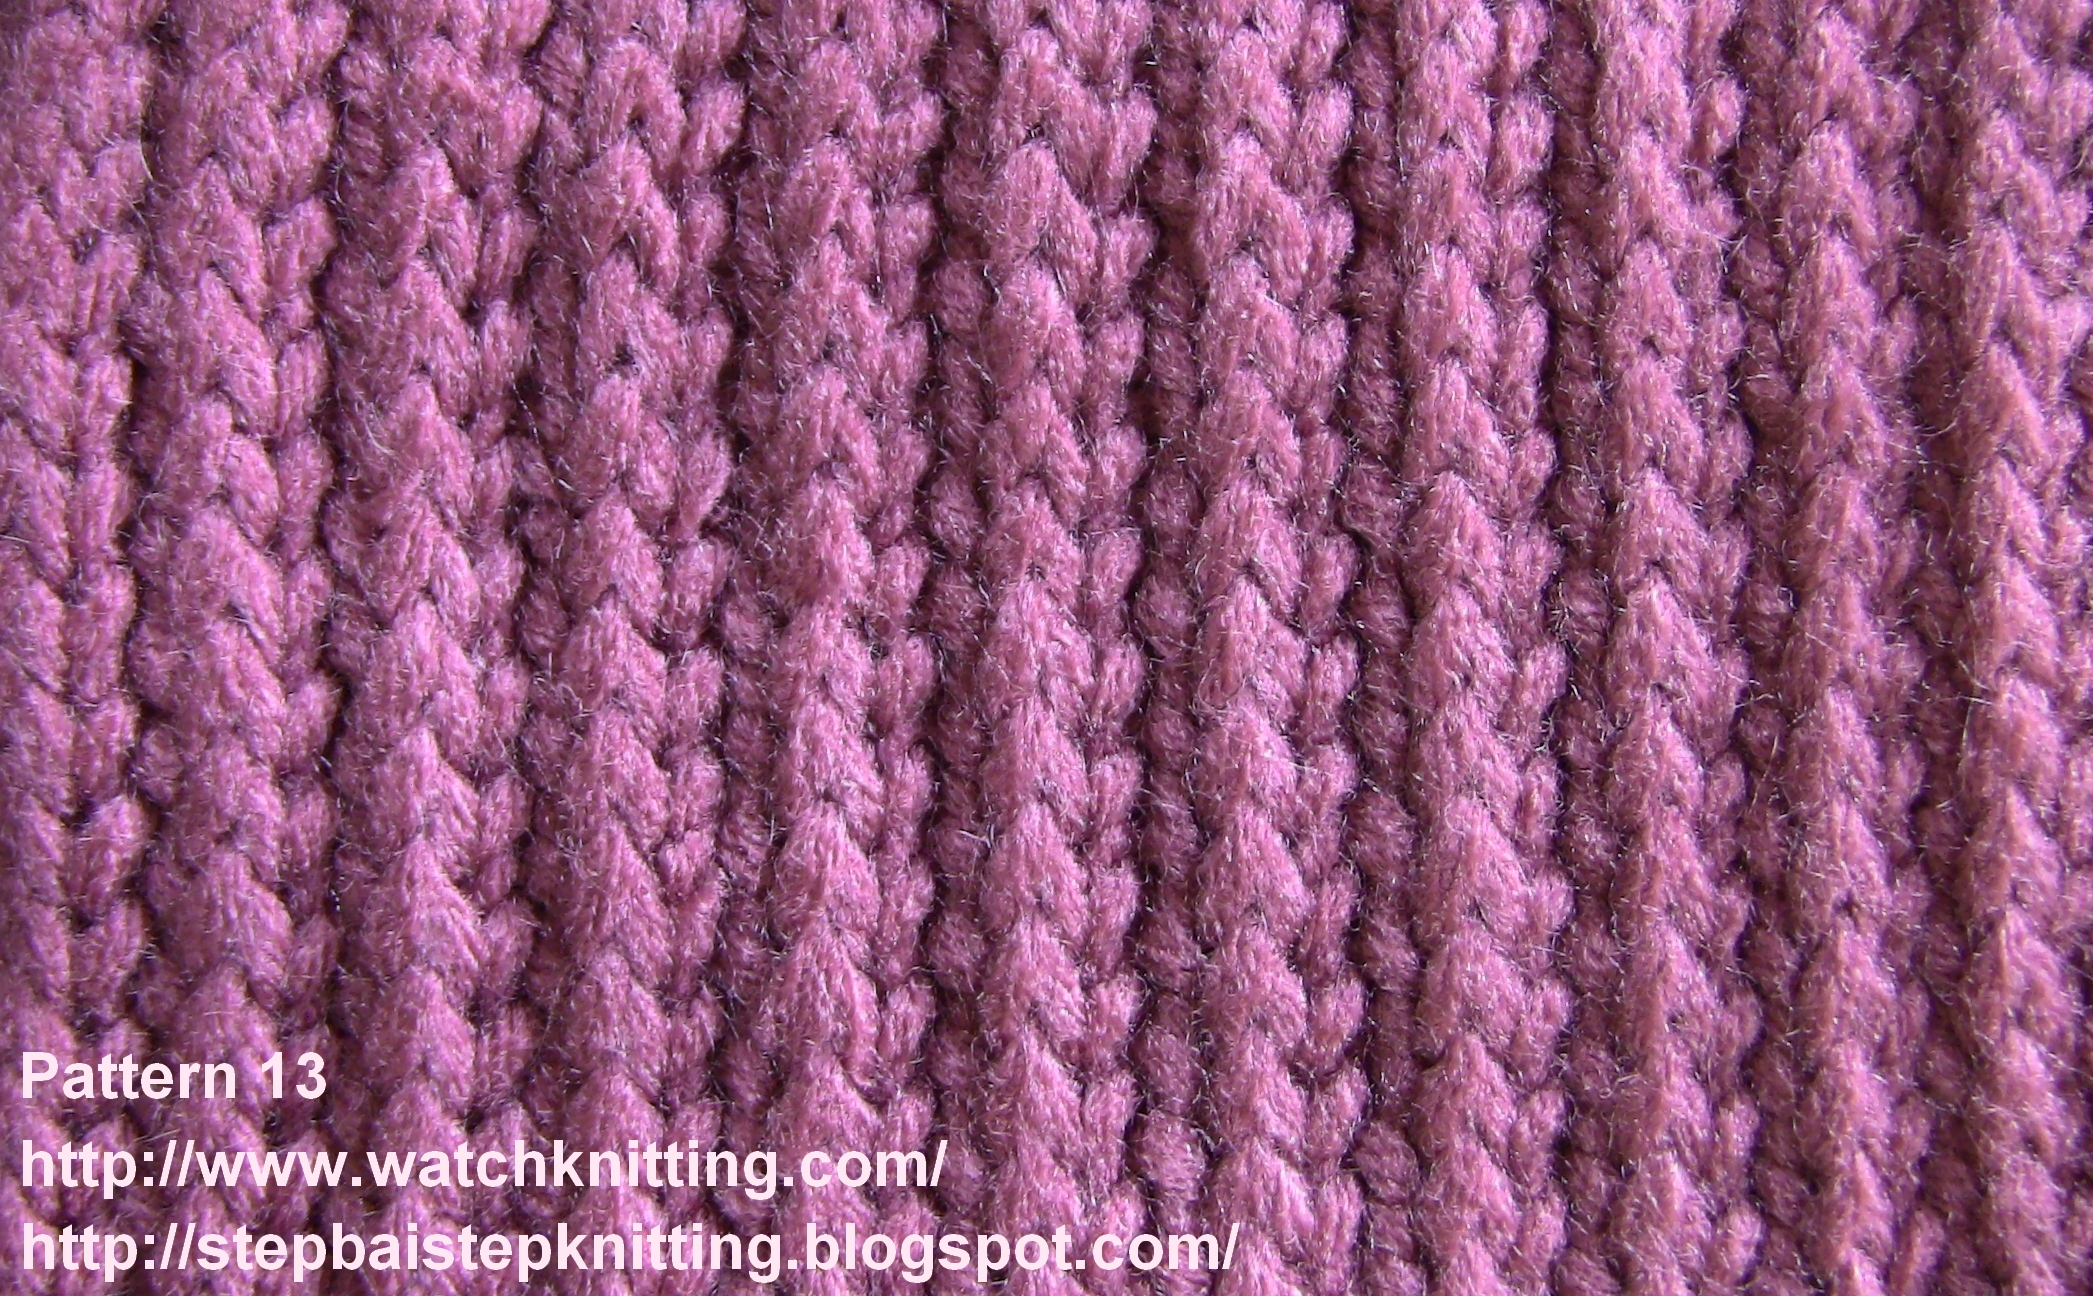 Knitting Instructions : easy knitting pattern - Knitting for charity?